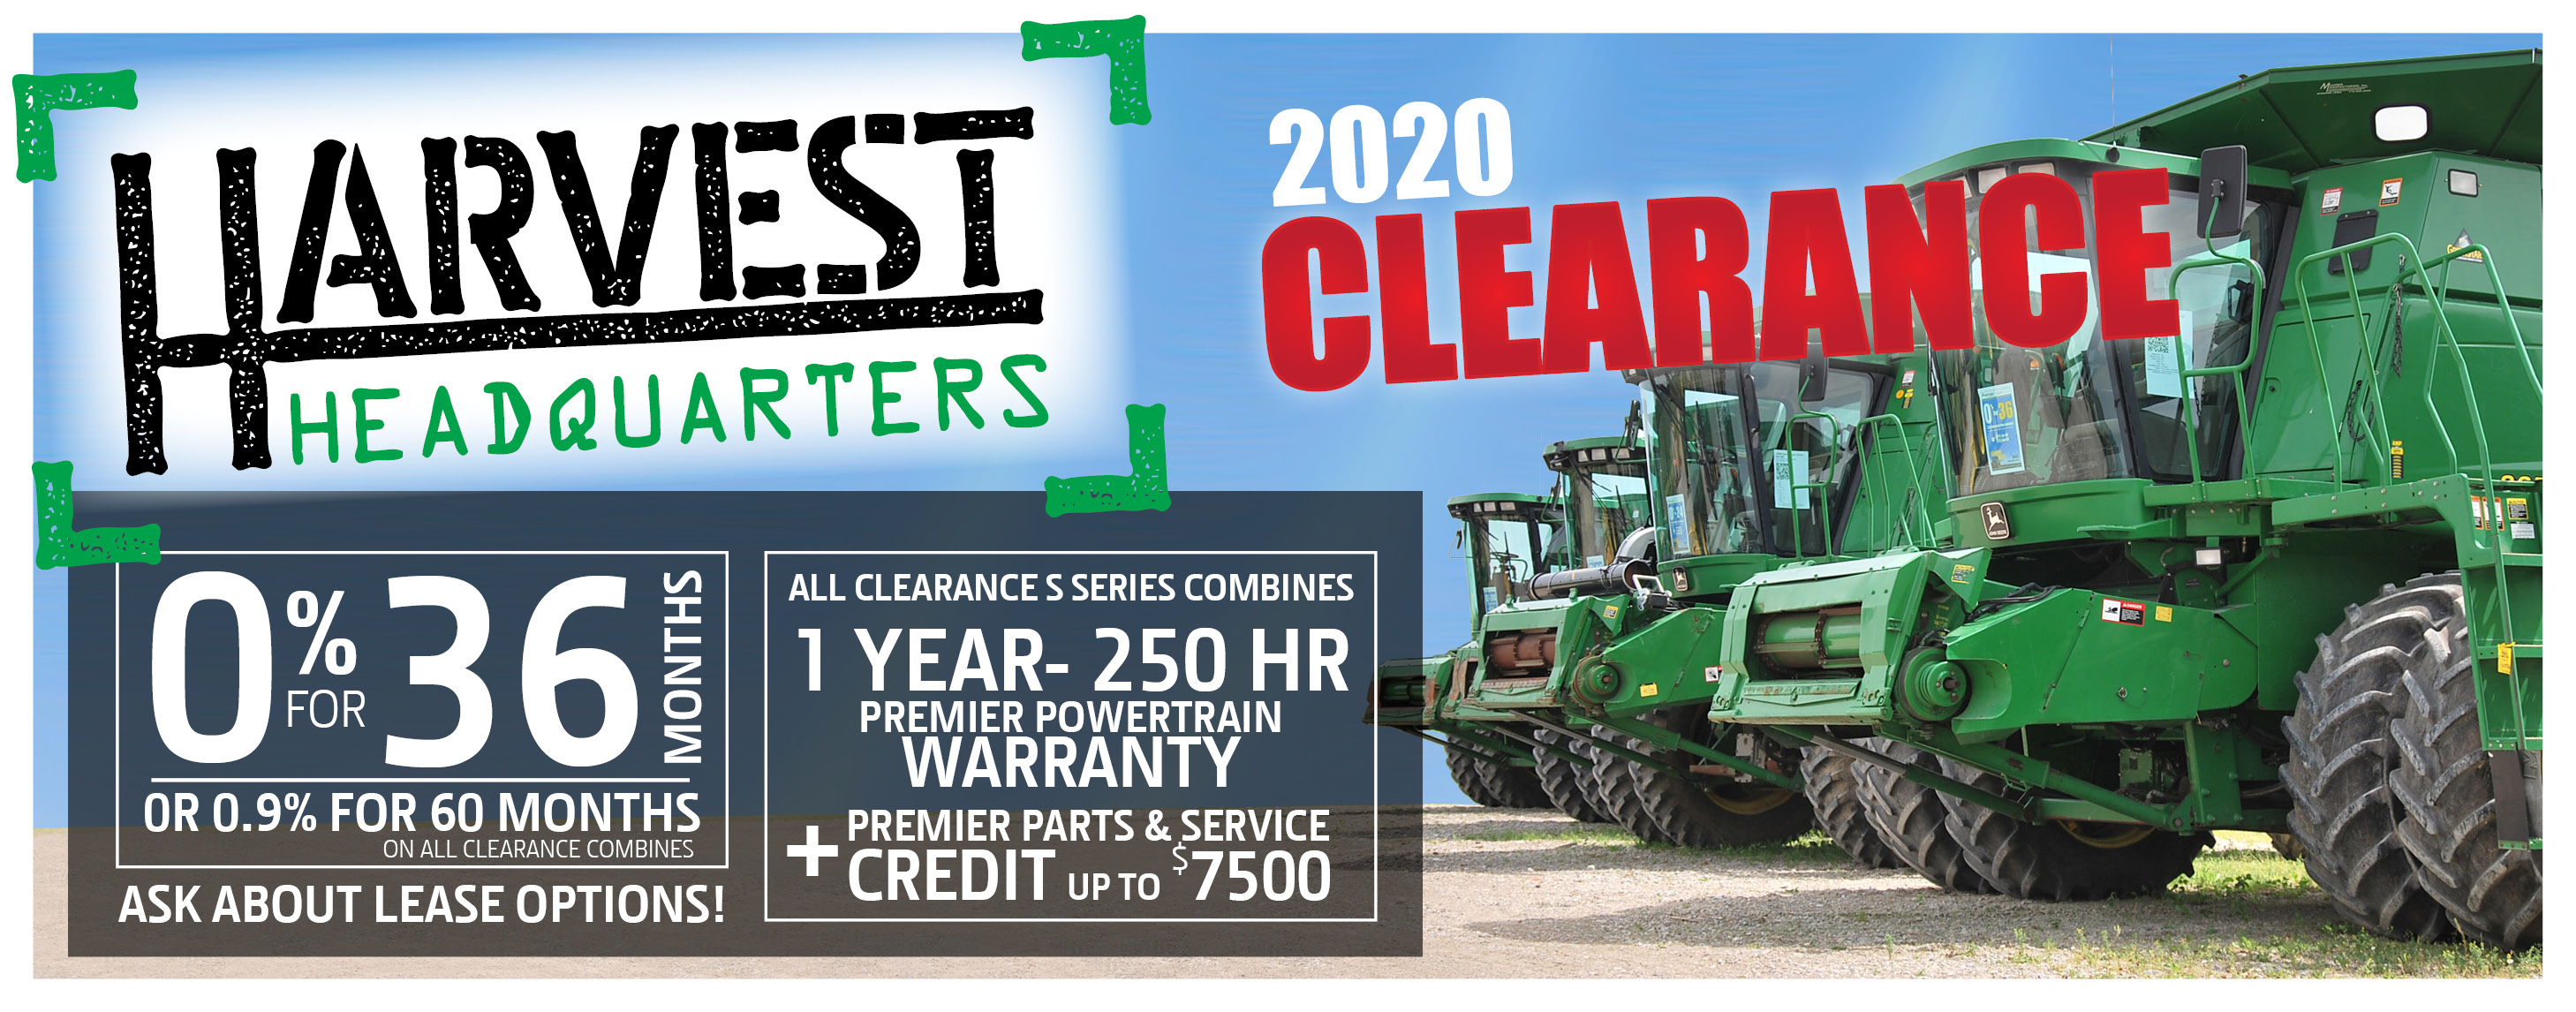 Harvest Headquarters 2020 Clearance